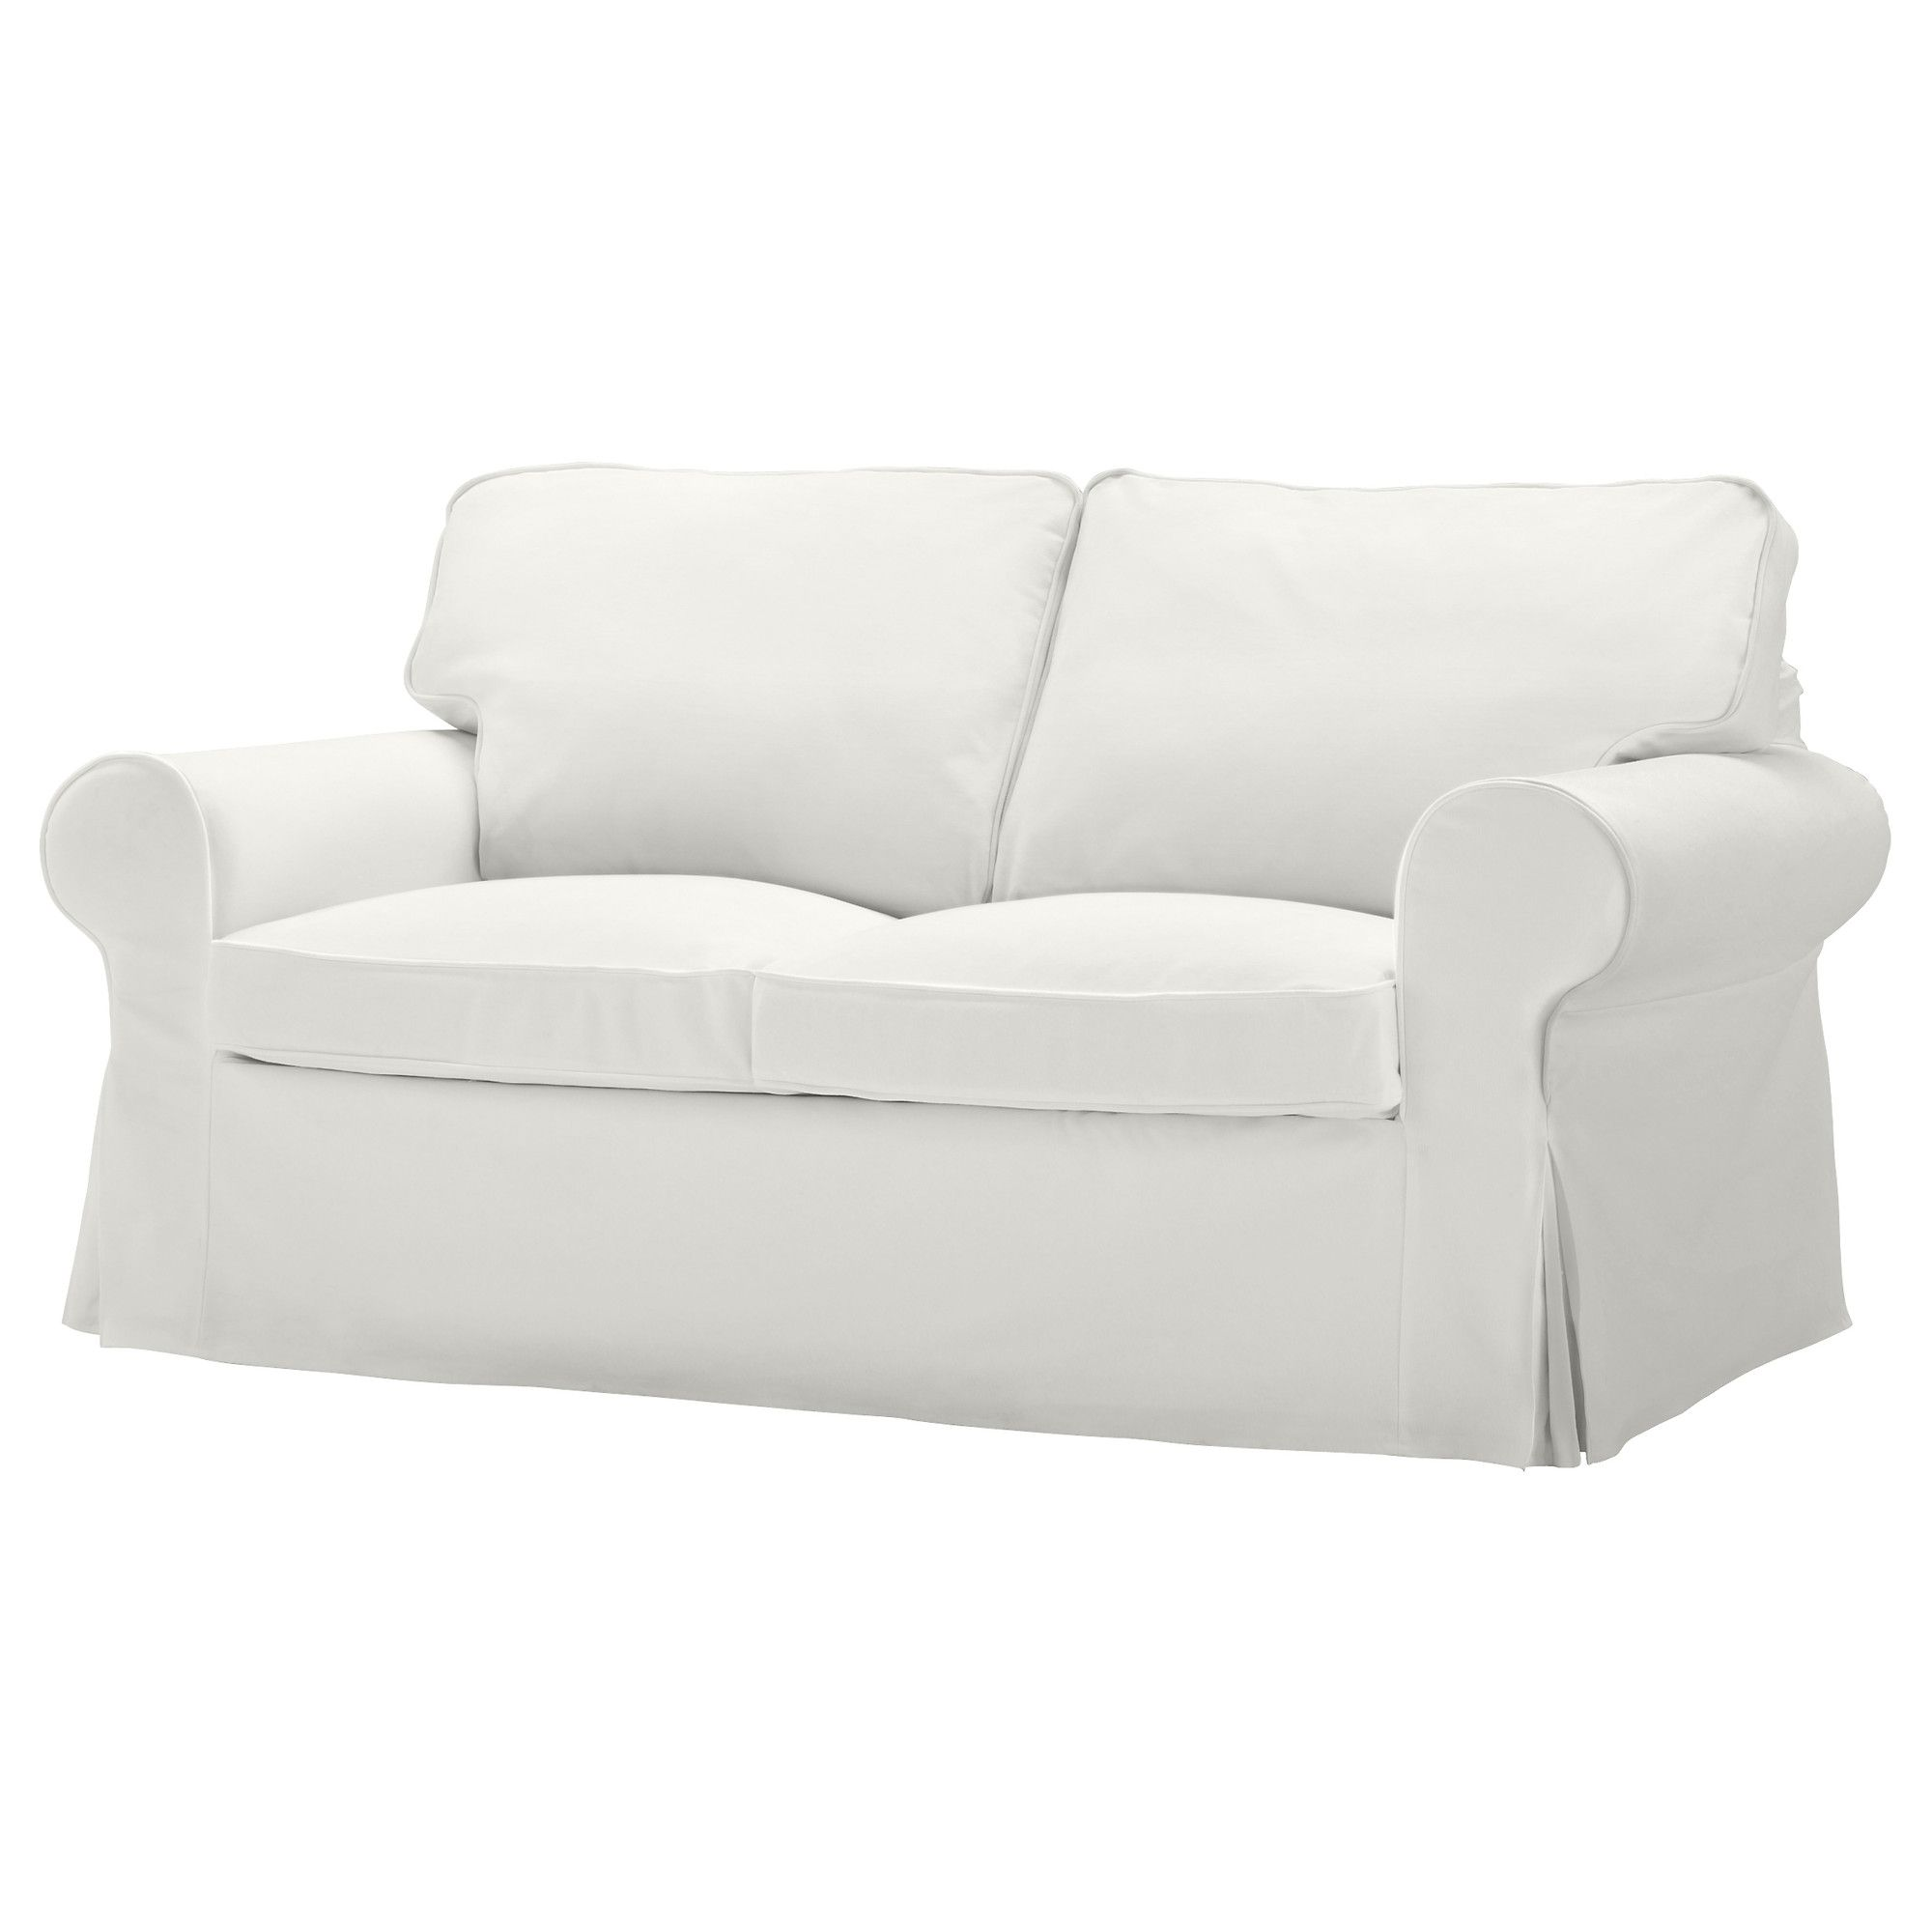 sofasofa discontinued concept slipcovers loveseat slipcoversikea ikeawhite images ikea size sectional of full ektorp for stunning sofa slipcover white ikeadiscontinued covers